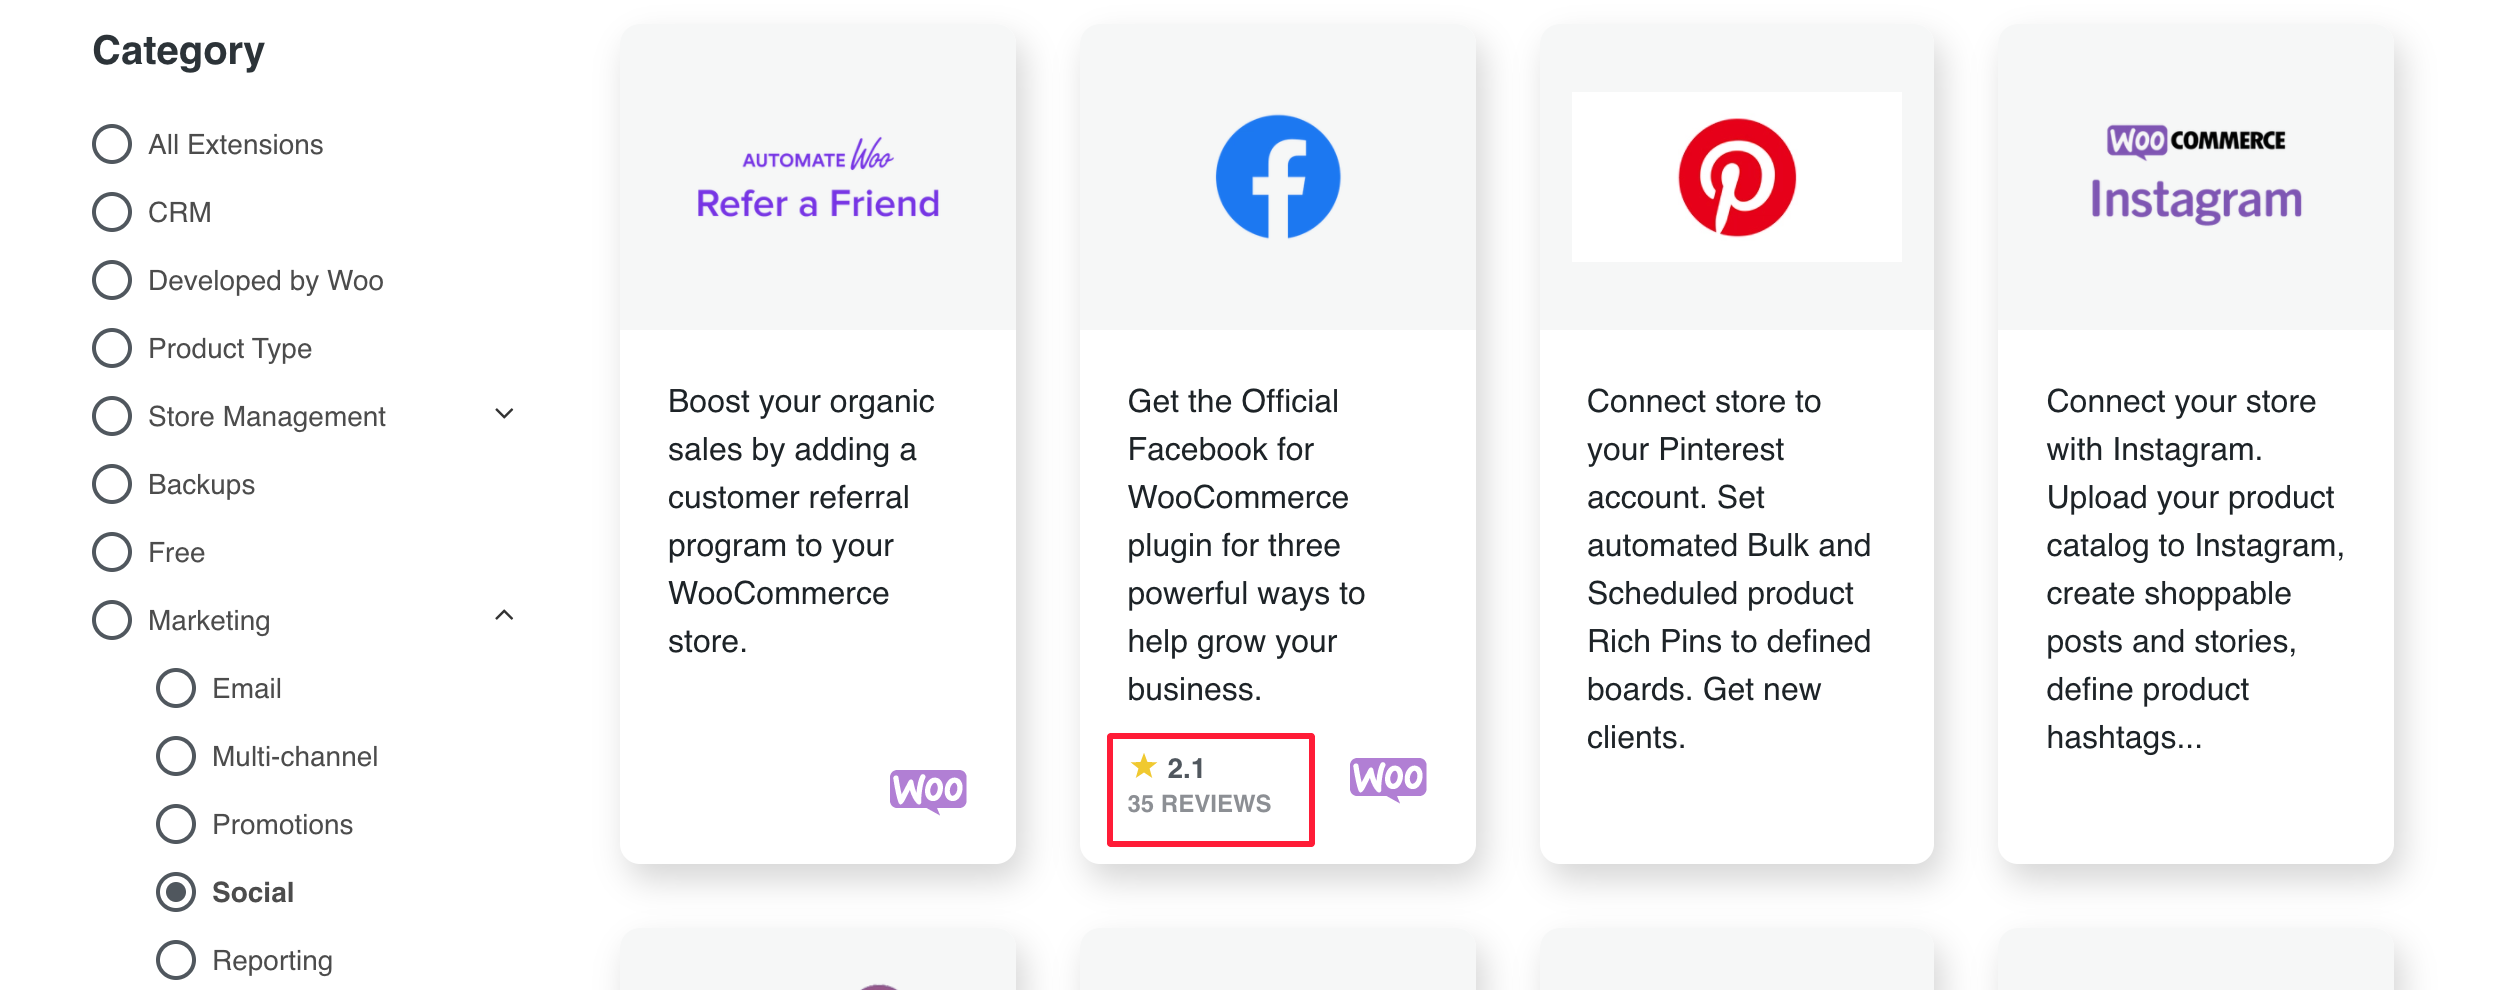 woocommerce social channel connection bad rating